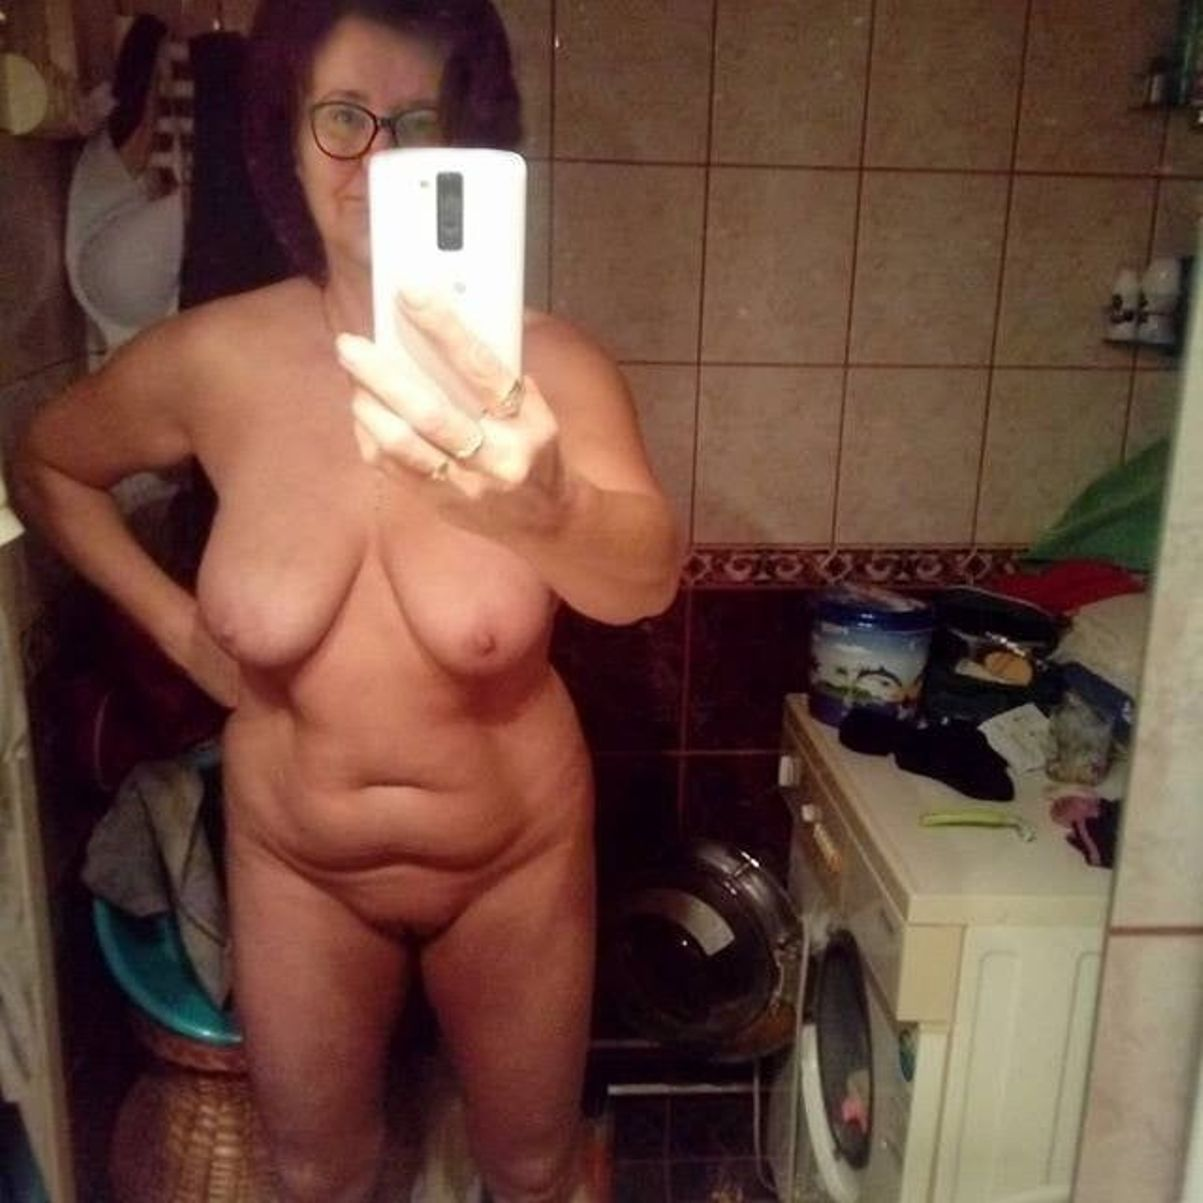 Chubby grannytakes totally naked selfie in the mirror. Glasses grandma with saggy boobs takes nude selfie